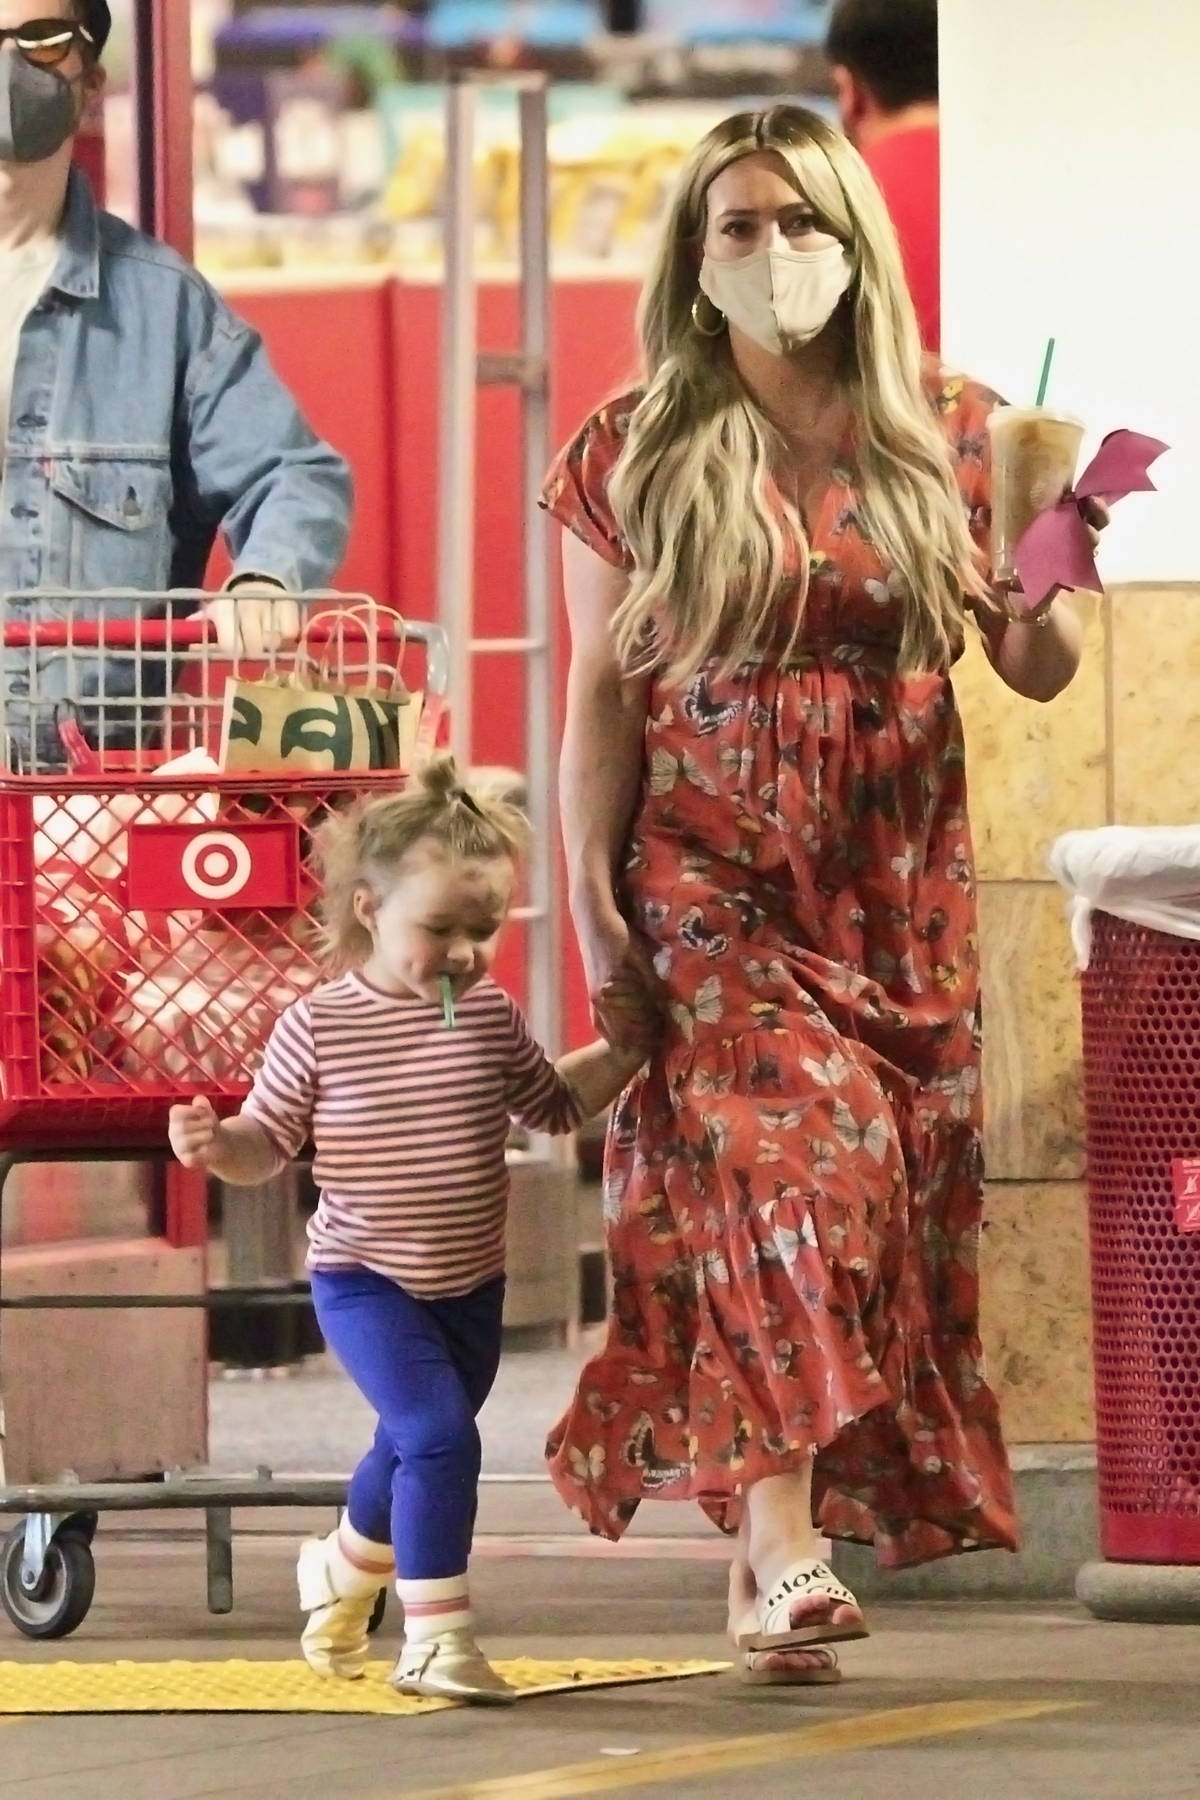 Hilary Duff wears a red butterfly print dress while shopping with her family at Target in Los Angeles